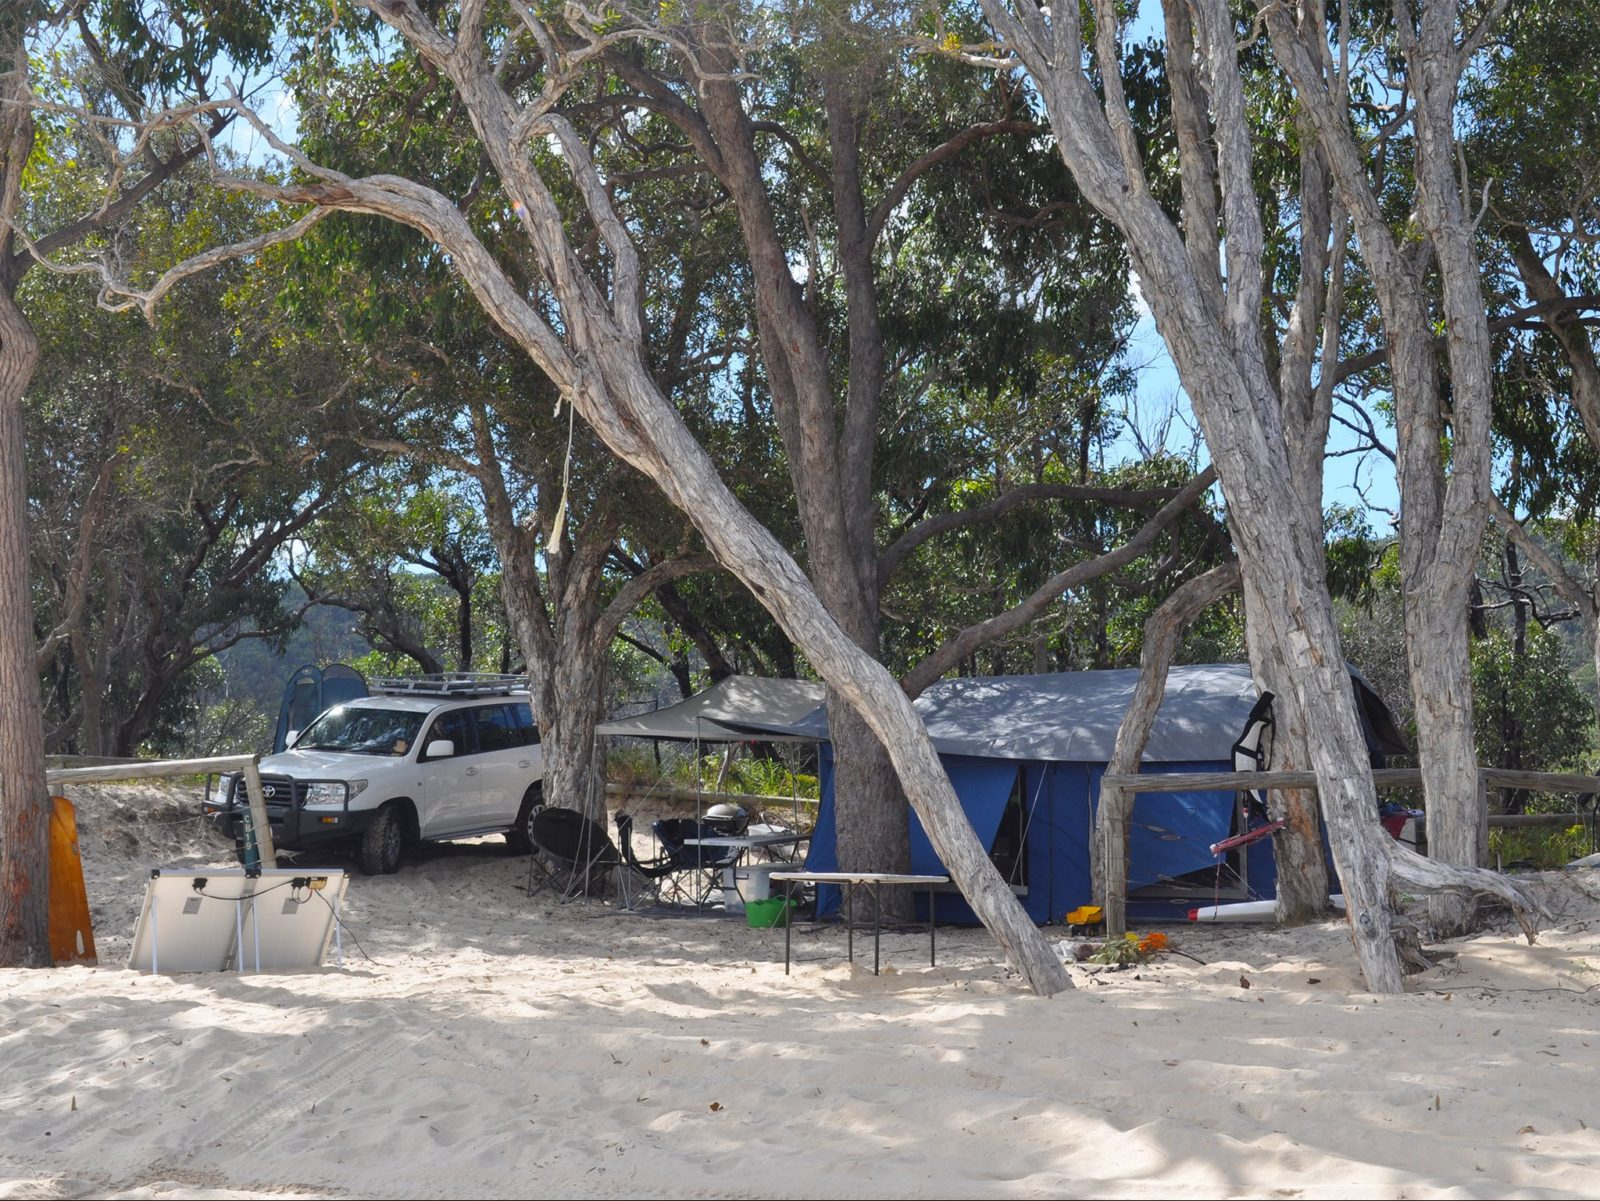 Tent and 4WD under trees on beach.